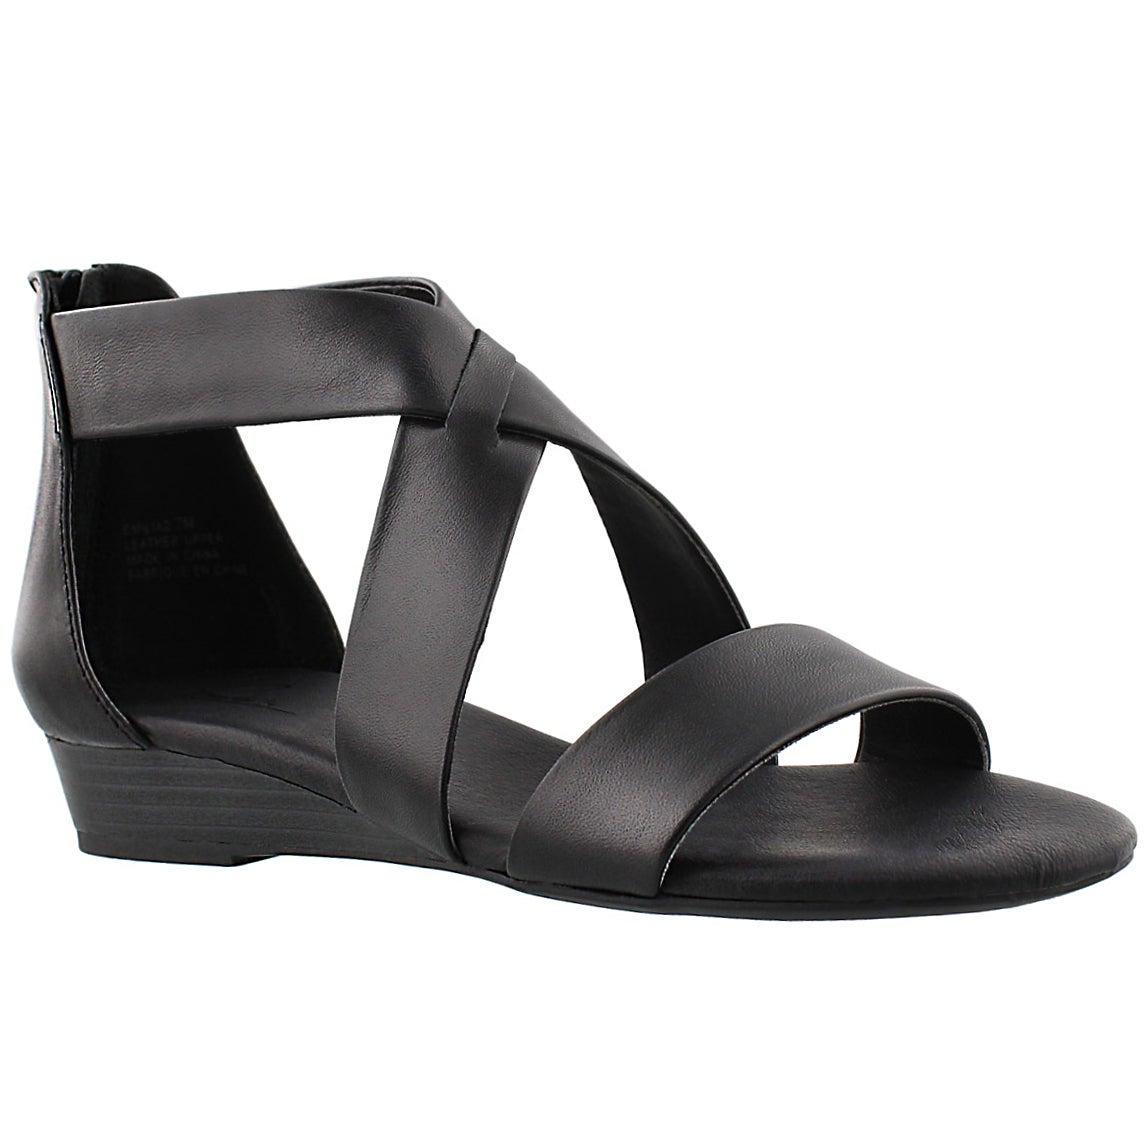 Women's EMILIA 2 black memory foam sandals